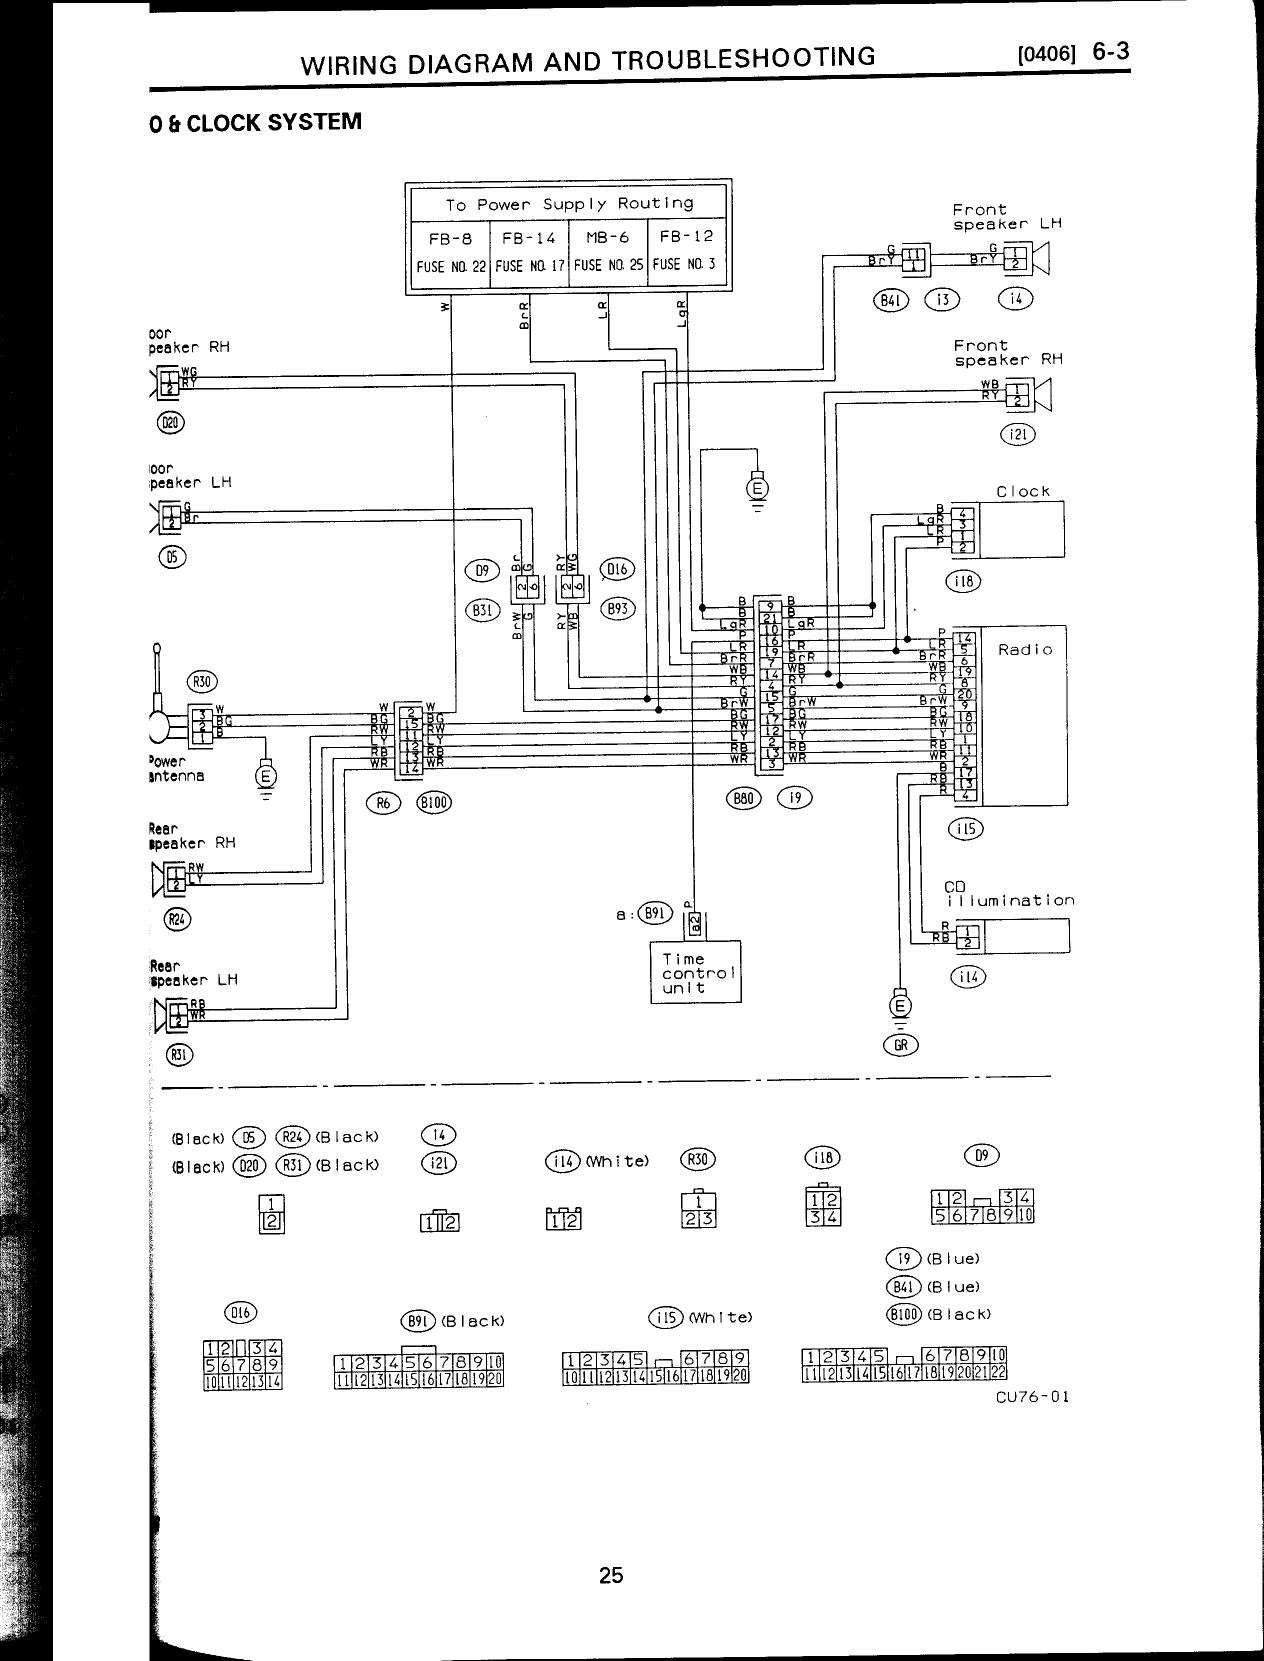 subaru impreza stereo wiring diagram wiring diagrams and subaru svx stereo wiring diagram car